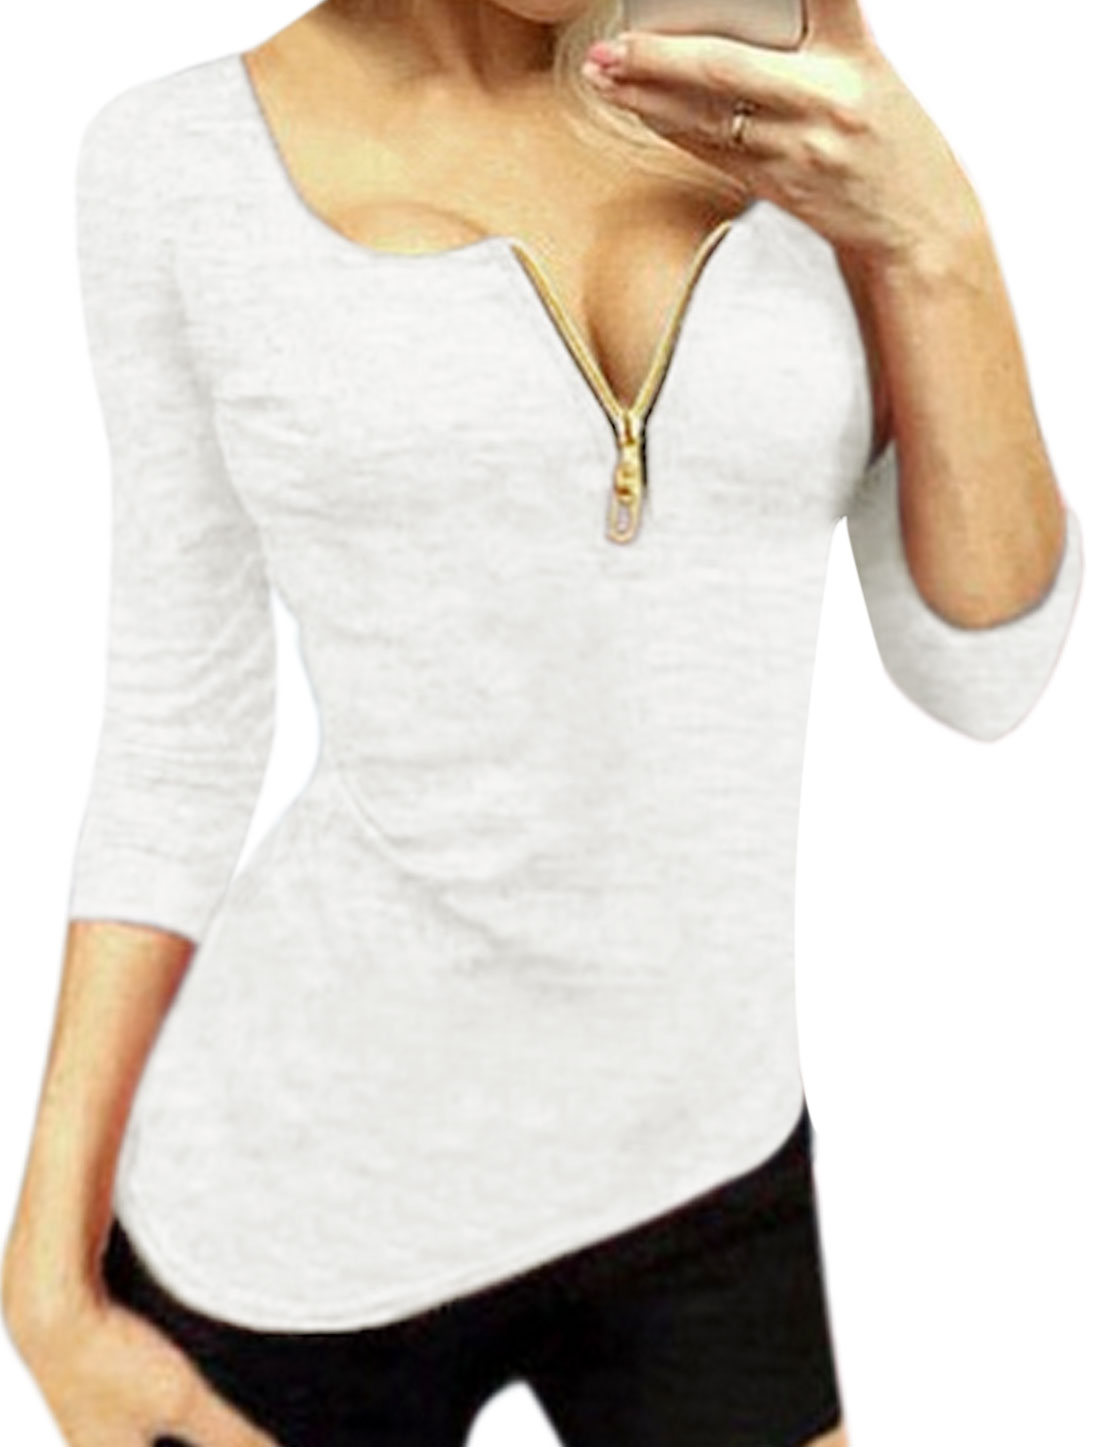 Women 3/4 Sleeves Zip Placket Slim Fit Tee Shirt White L